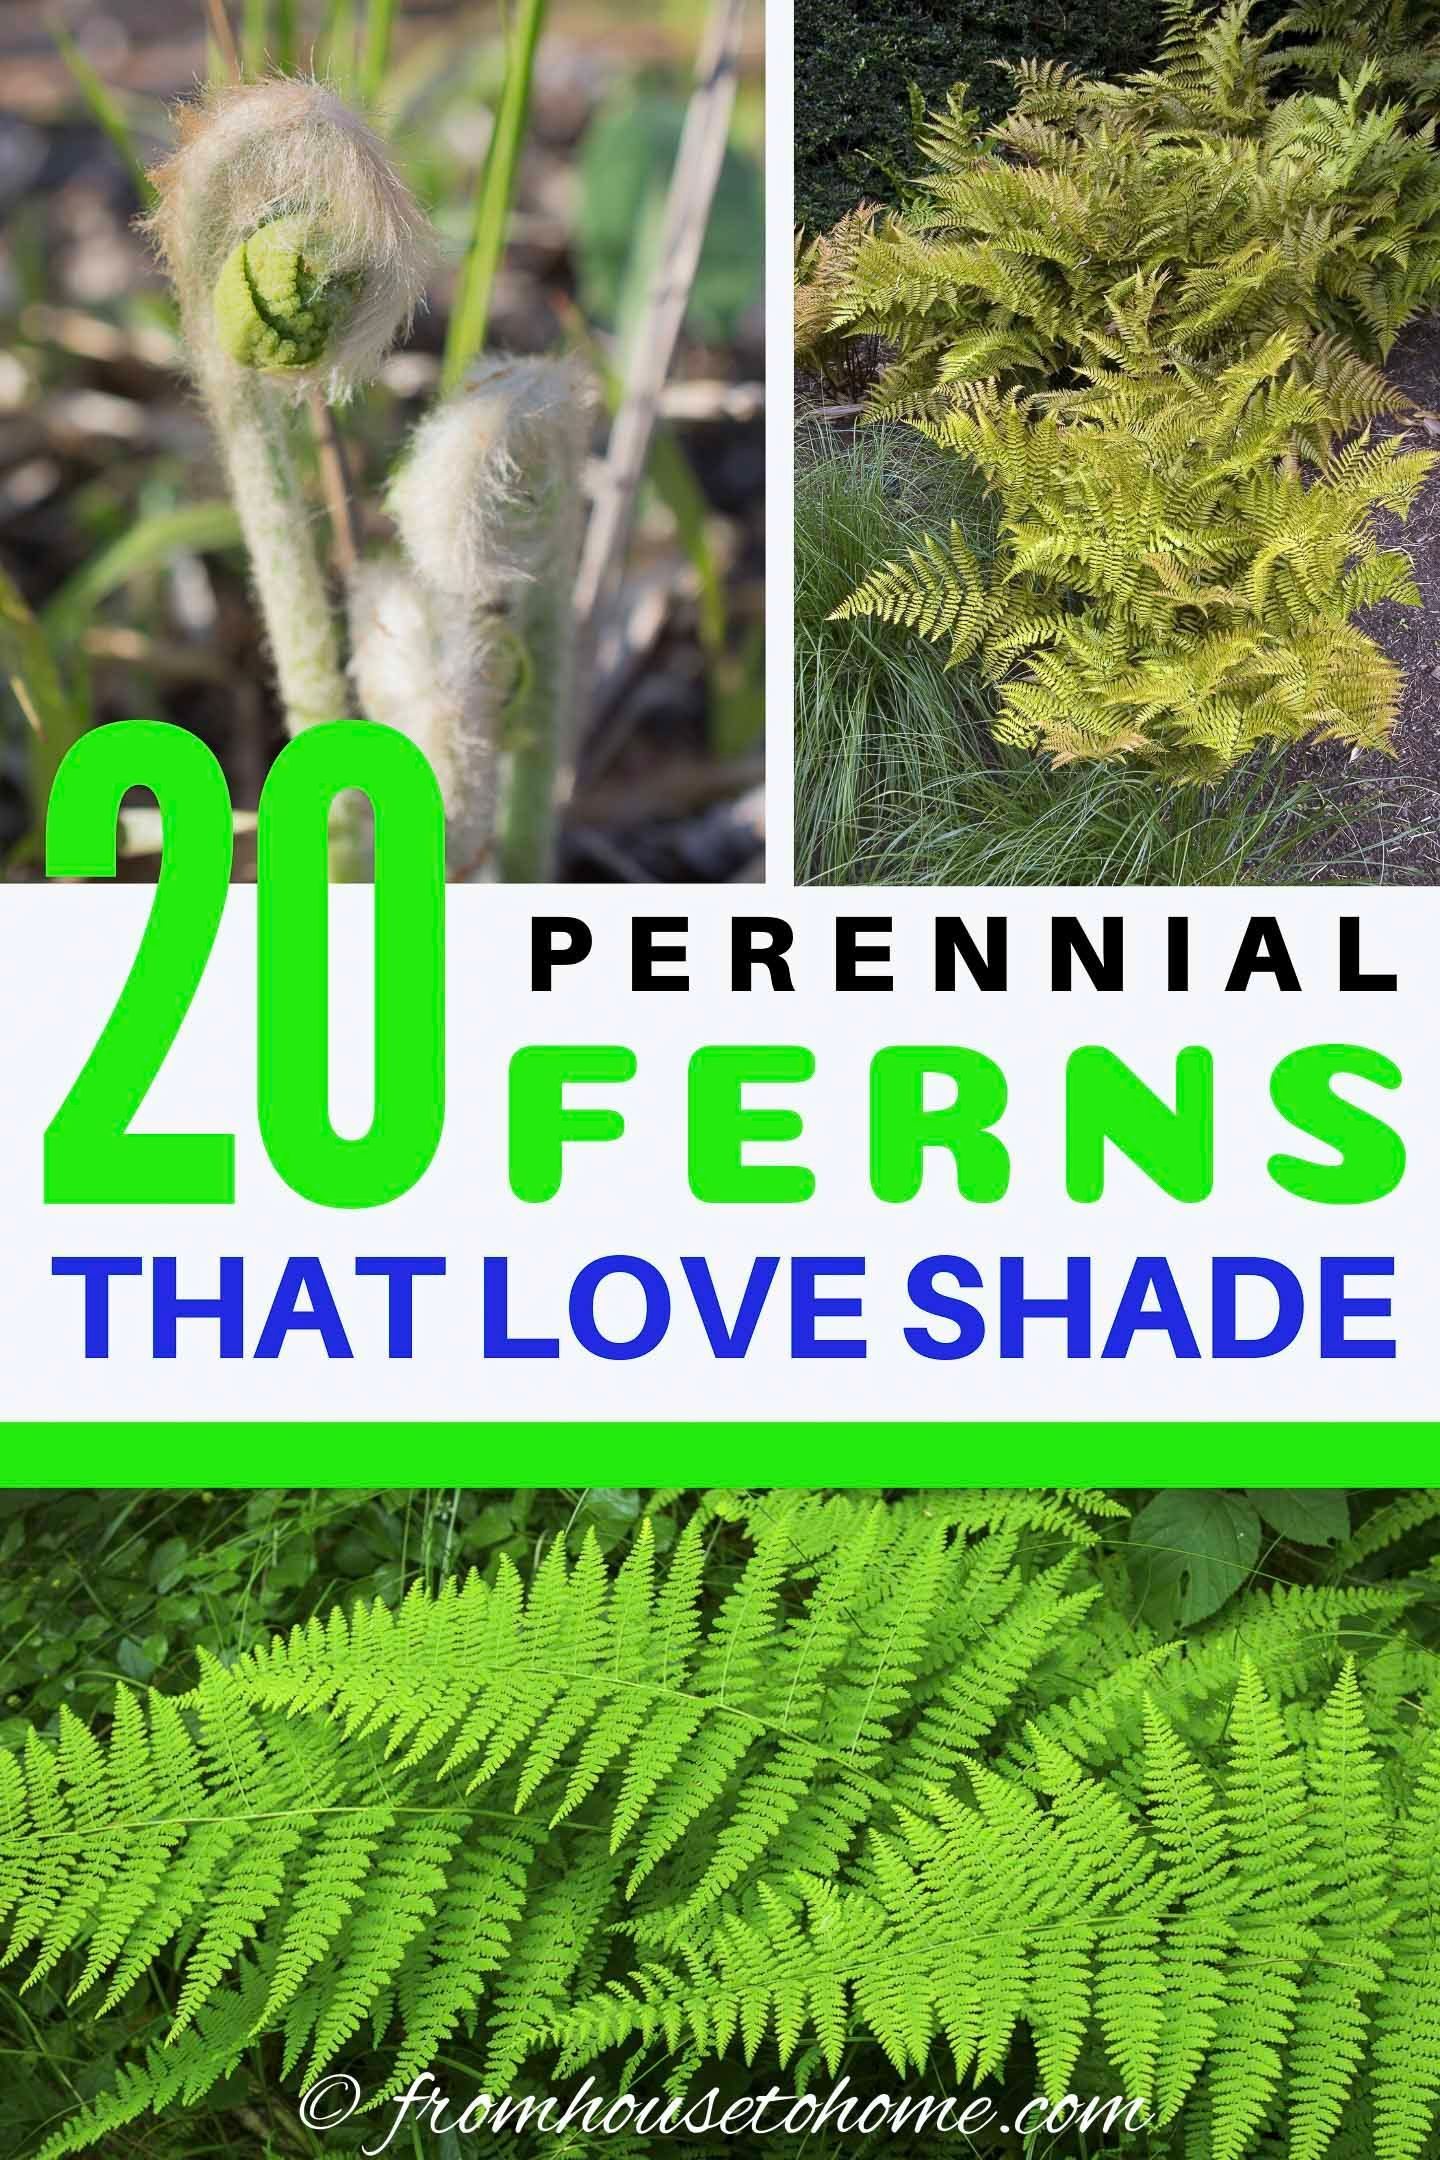 20+ Winter Hardy Fern Varieties is part of Shade garden plants, Shade garden, Shade perennials, Shade plants, Evergreen ferns, Types of ferns - For shadeloving ferns, evergreen ferns, tall ferns or short ones, this list of winter hardy fern varieties has something for every garden